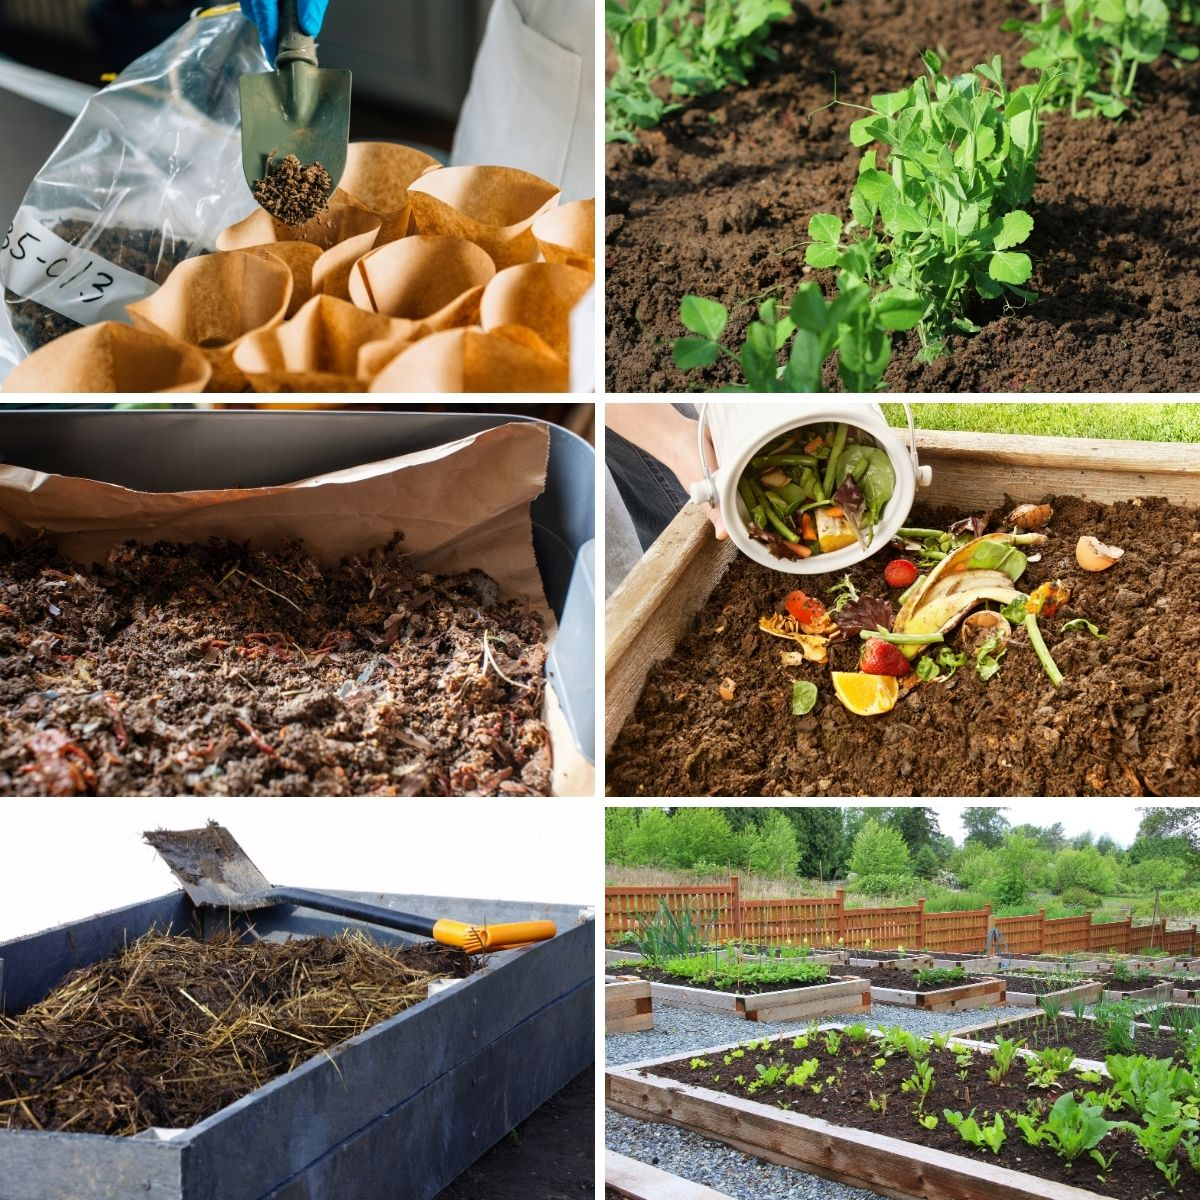 Photos featuring tasks to do to amend the garden bed soil.